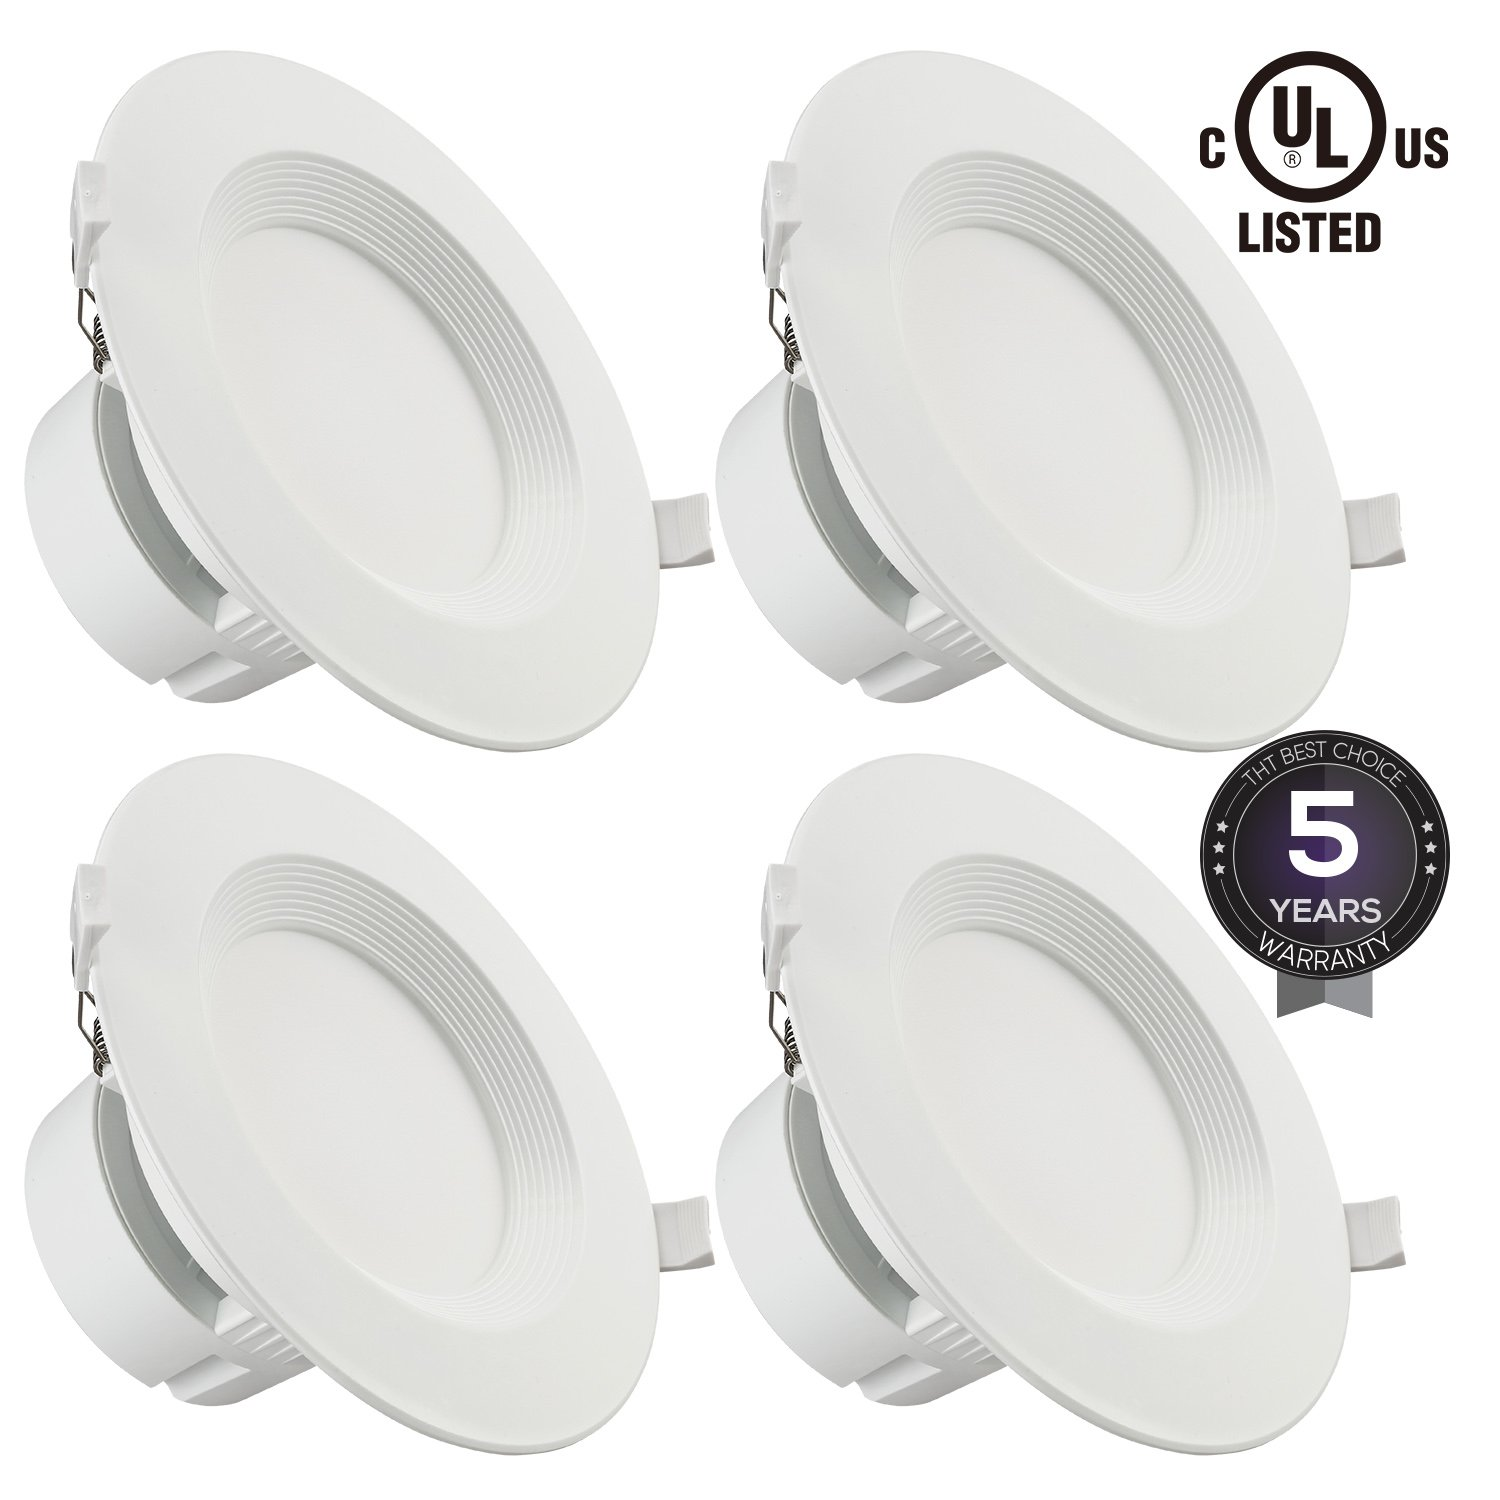 """TORCHSTAR 4 PACK 6"""" LED Recessed Downlight with Junction Box, 9W (80W Equivalent) Dimmable LED Ceiling Light Fixture, IC-Rated & Air Tight, Wet Location, 5000K Daylight, UL-listed, 5 Years Warranty"""